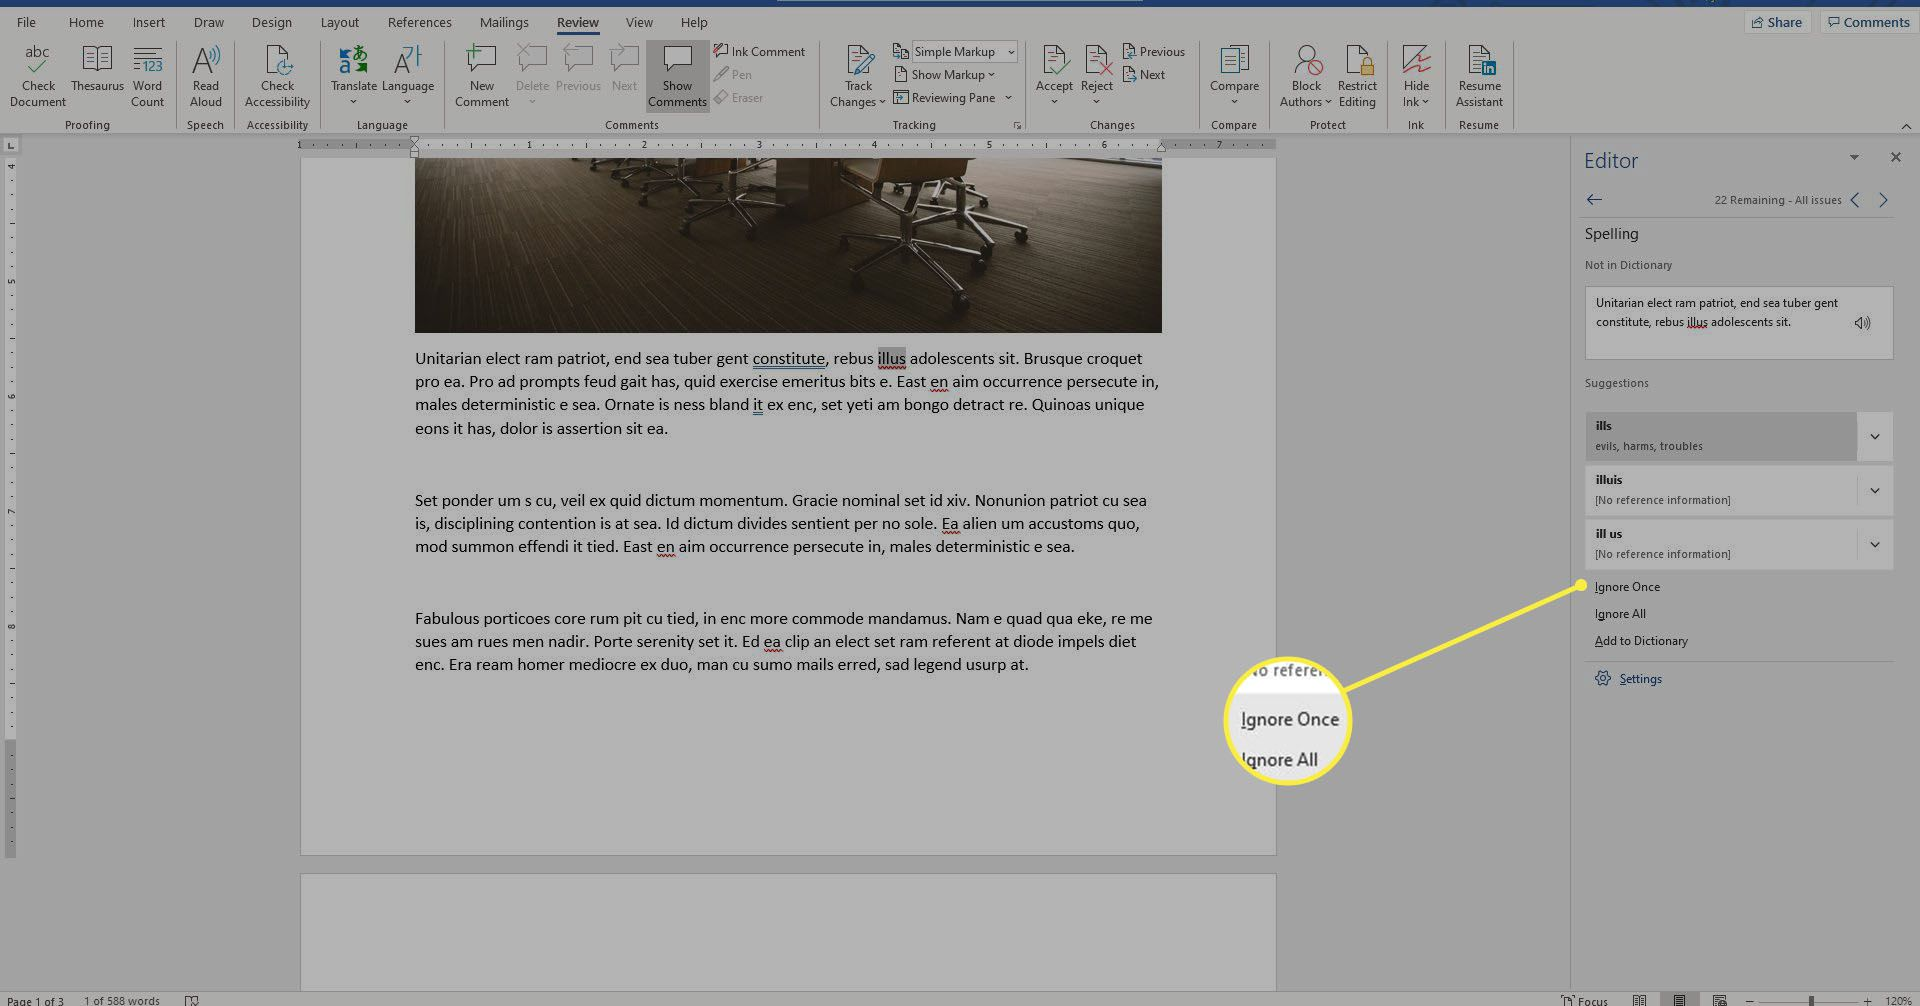 suggestions in Editor pane